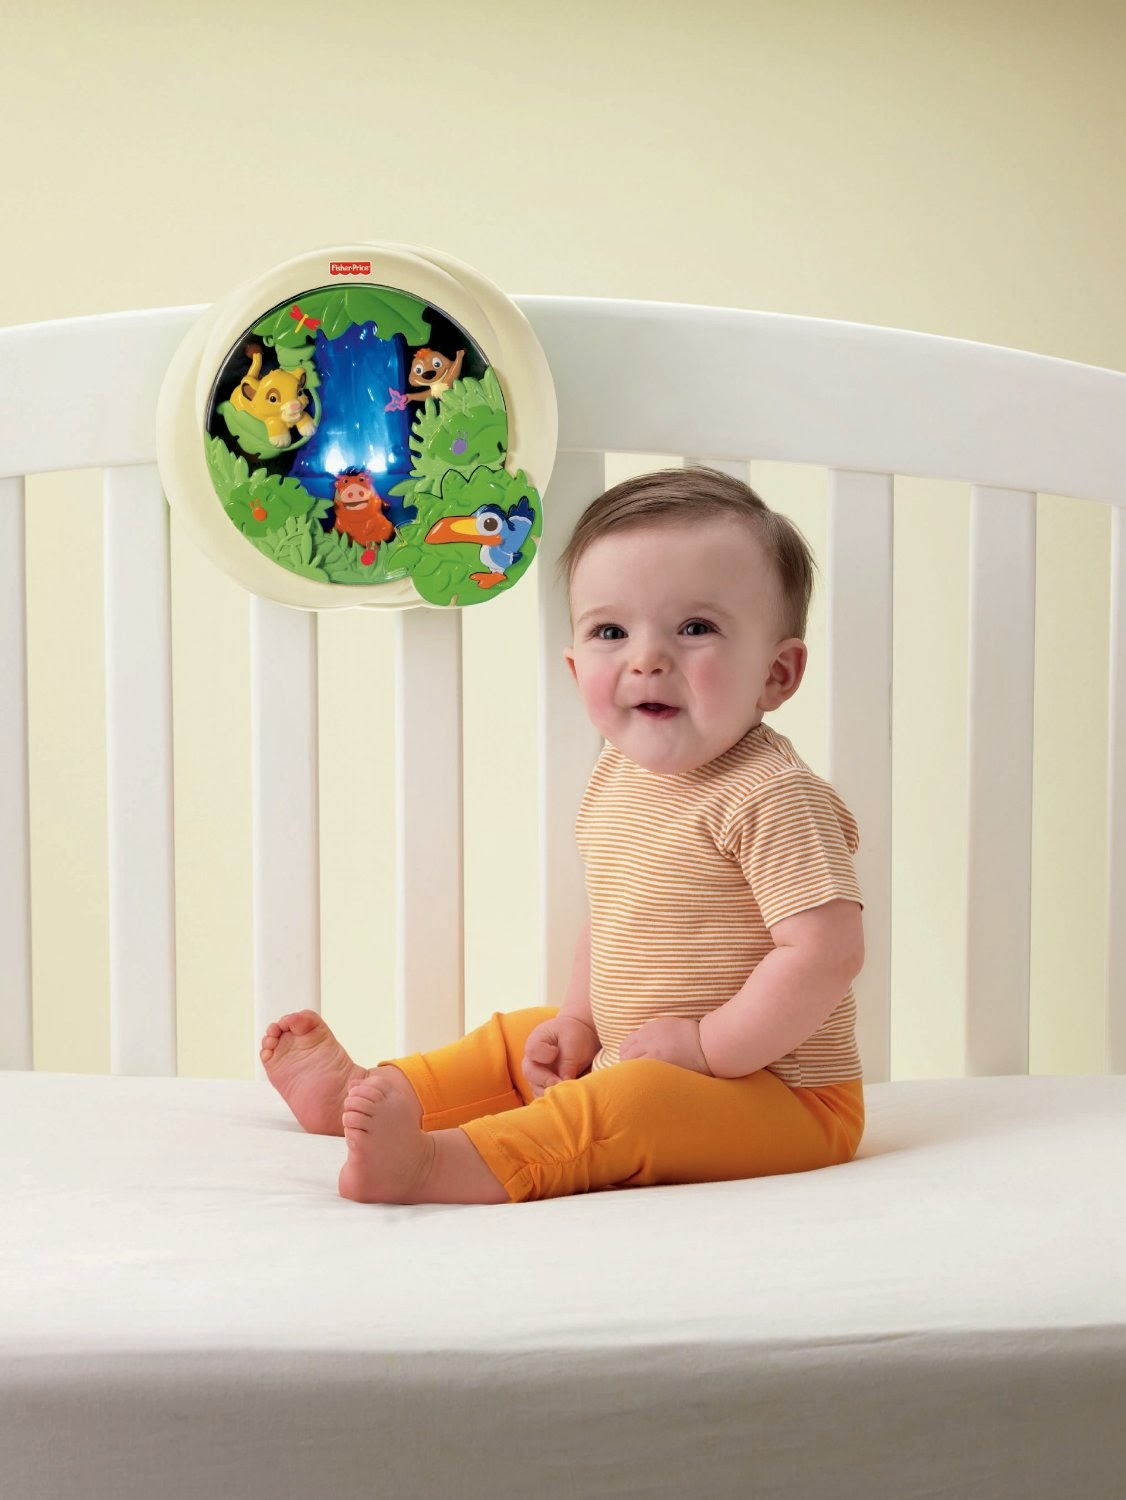 Get the Fisher-Price Disney Baby Lion King Peek-a-Boo Soother for $31.99 (WAS $45)